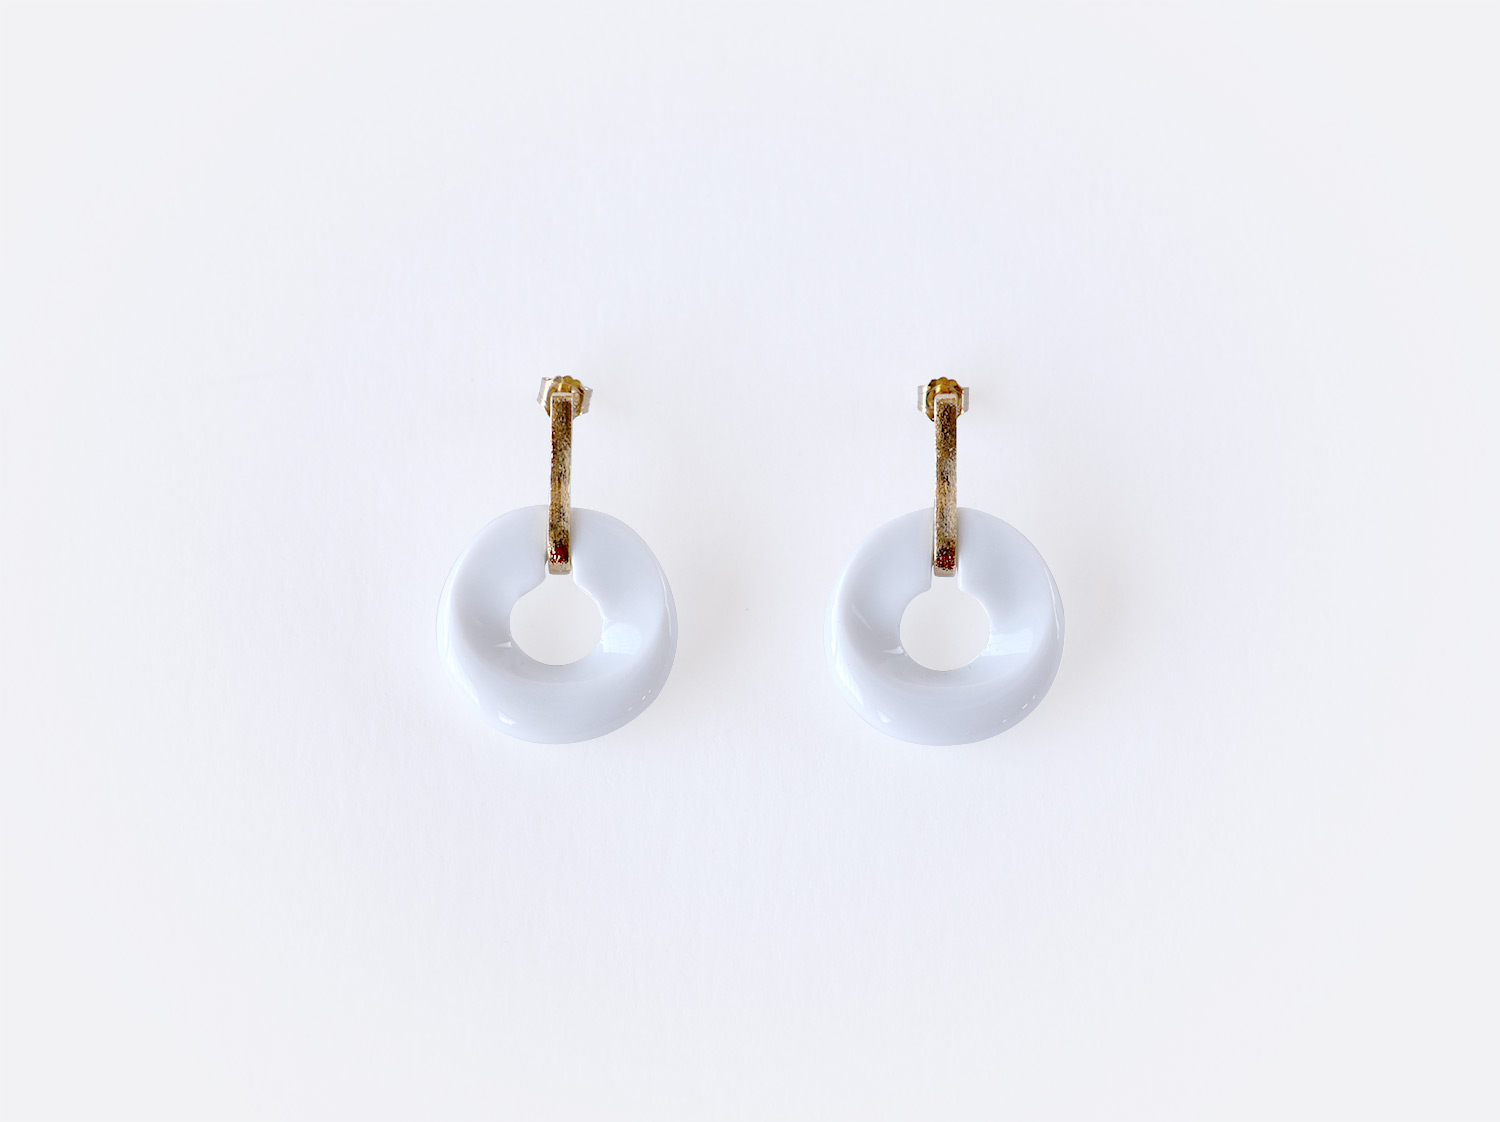 China Alba blanc Earrings of the collection ALBA BLANC | Bernardaud